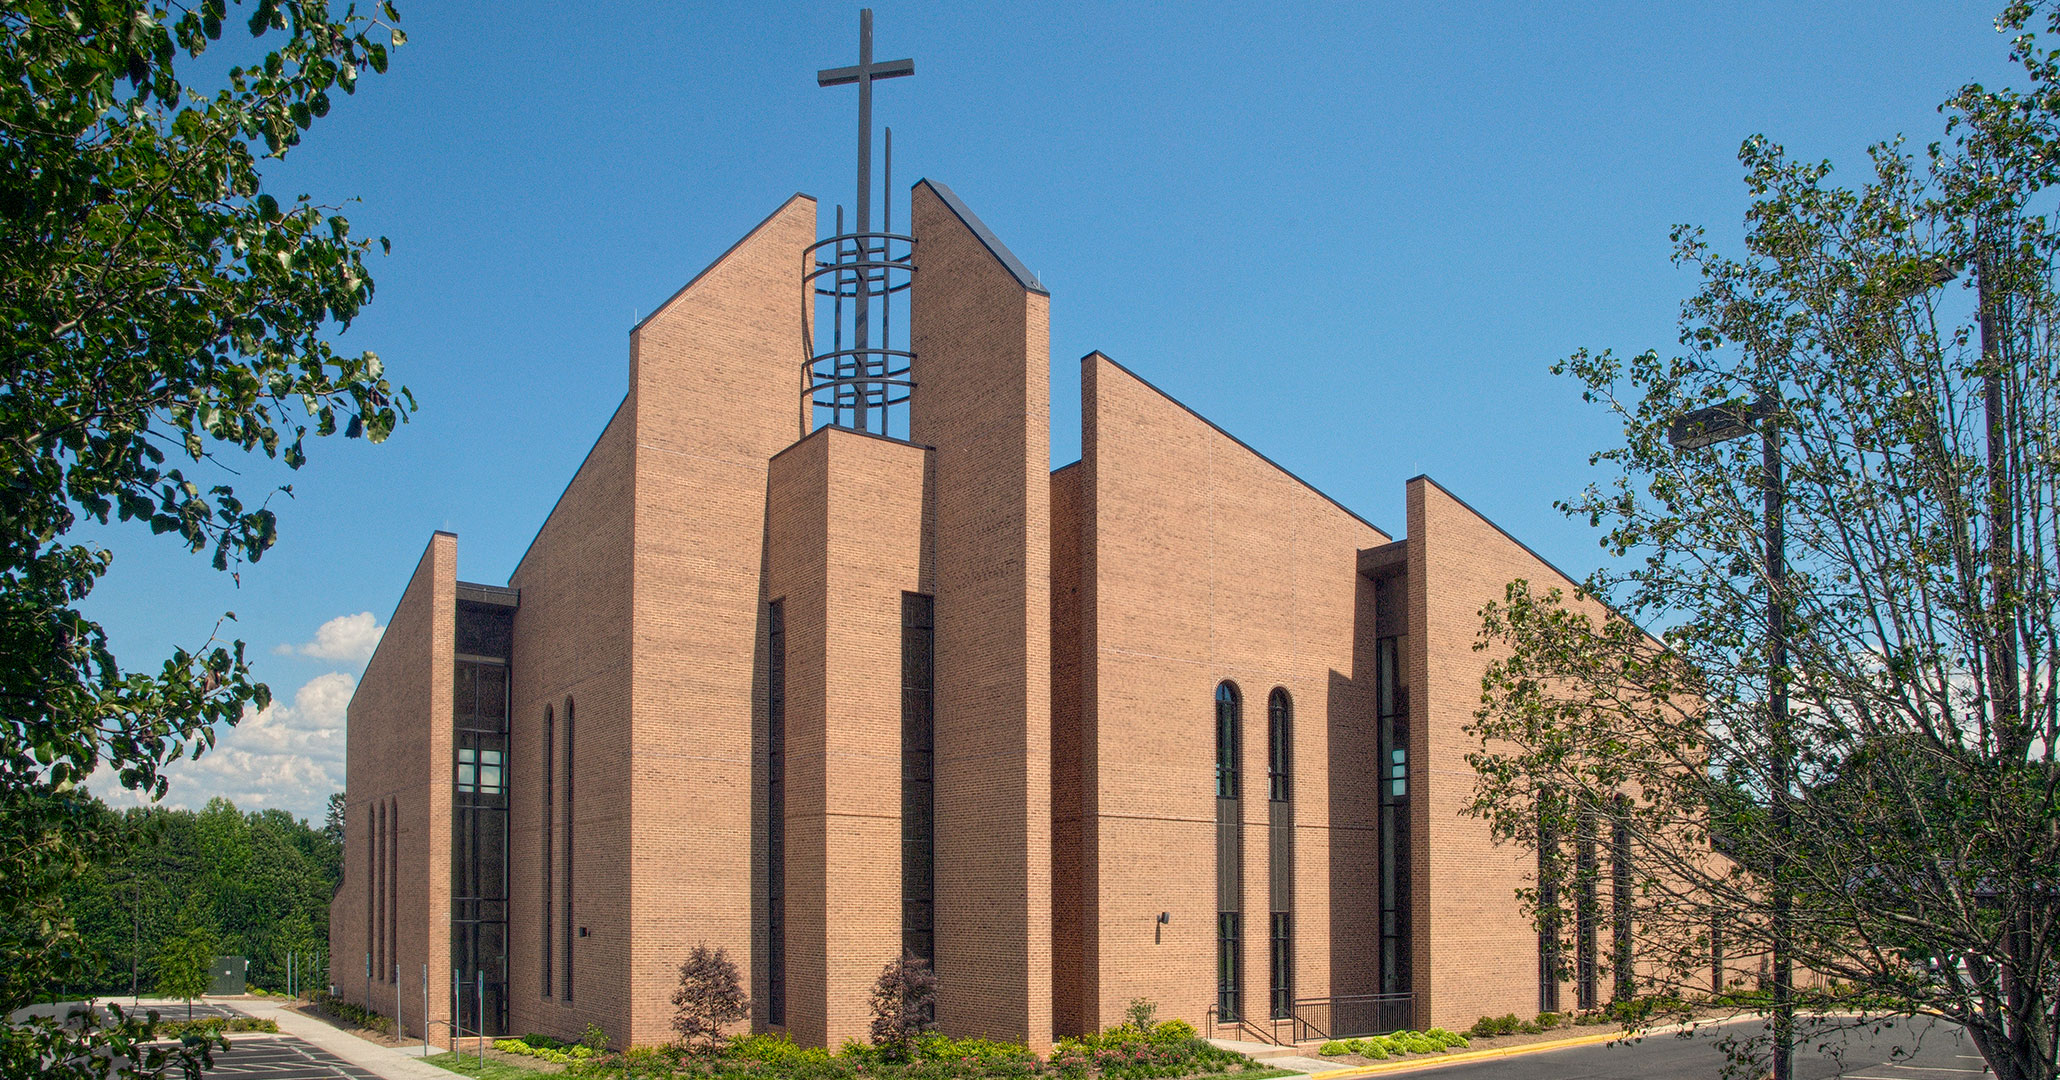 Boudreaux is experienced in designing Catholic churches, working with St. Therese in Mooresville, NC we designed a space that serves as a spiritual space.